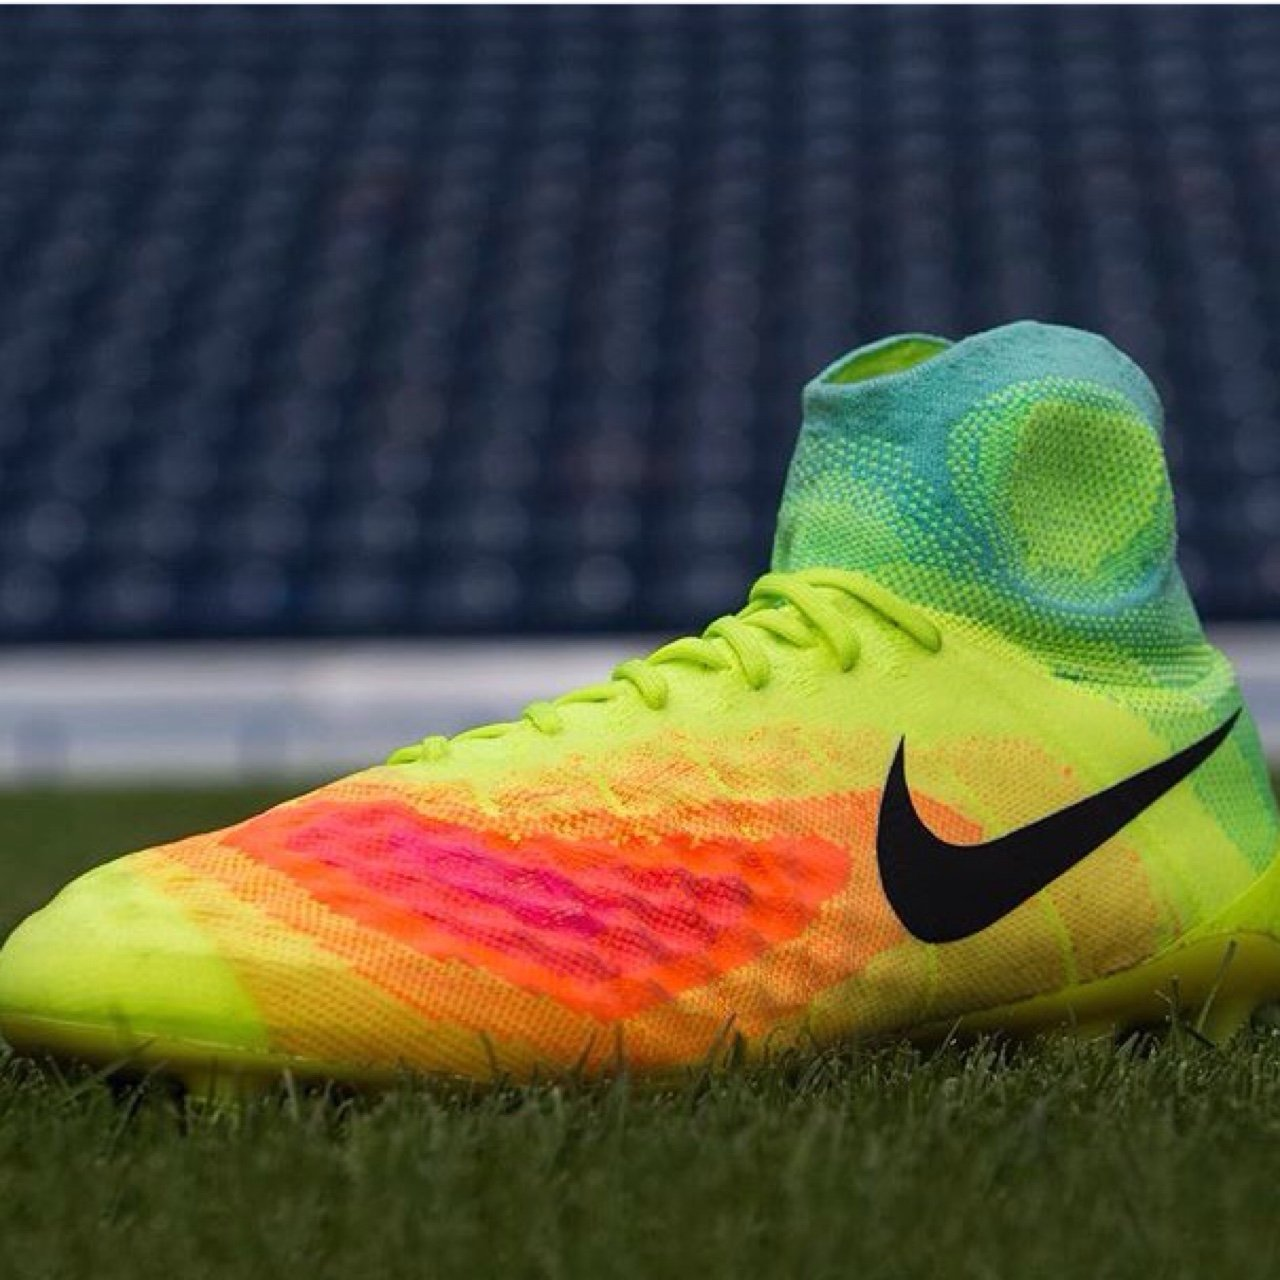 reputable site a8bbe 9435f ANY NIKE MERCURIAL SUPERFLY  MAGISTA OBRA ETC ANY SIZE FOR -